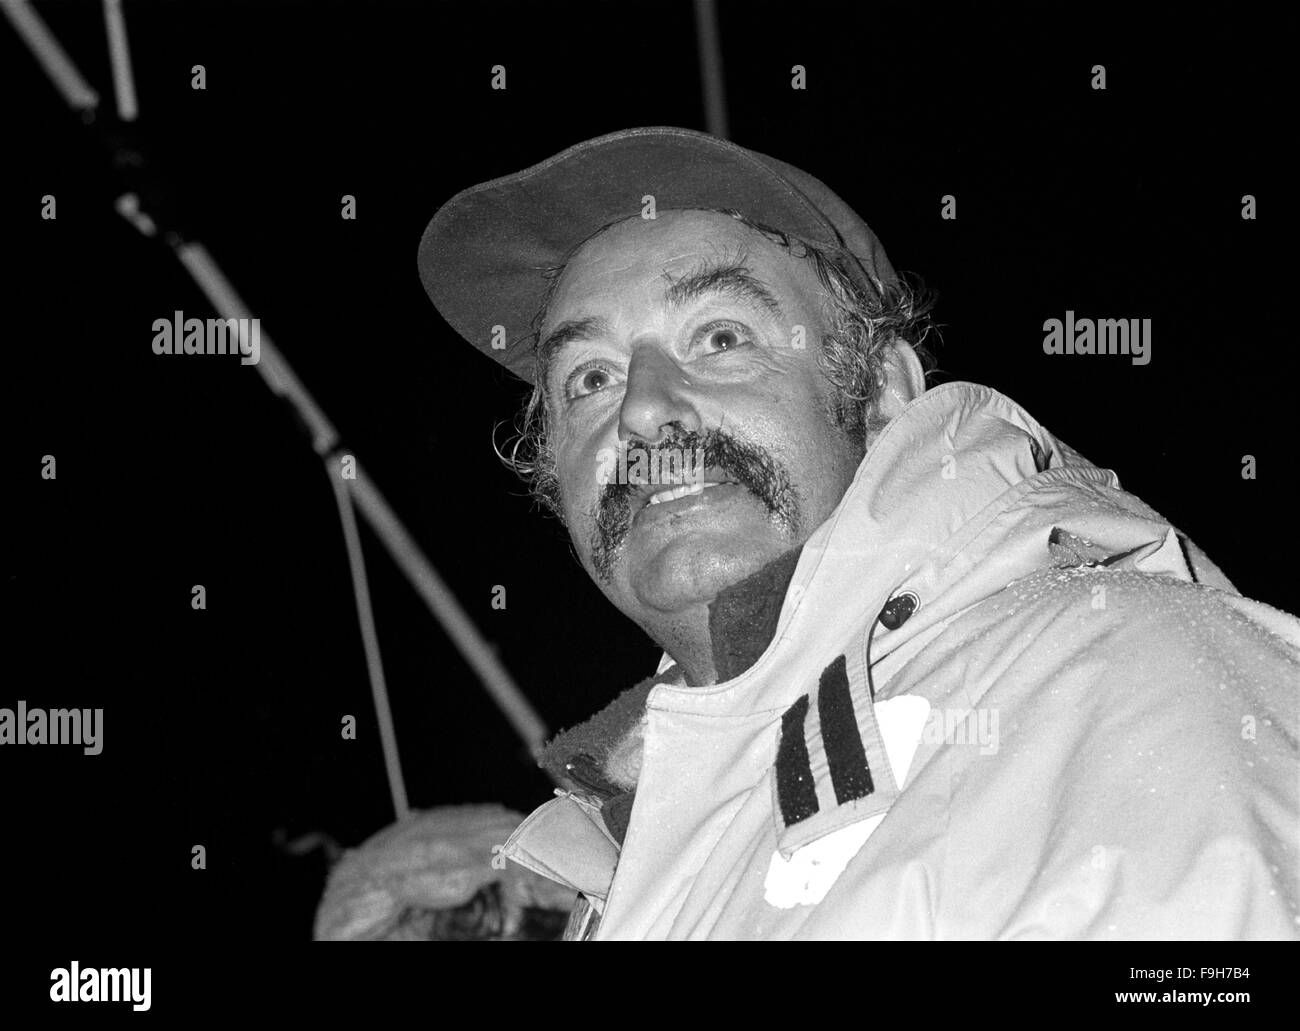 AJAXNETPHOTO. 7TH APRIL, 1982. GOSPORT, ENGLAND - YACHT SKIPPER HOME - RAIN SOAKED AND TIRED FIRST CO-OPERATIVE - Stock Image